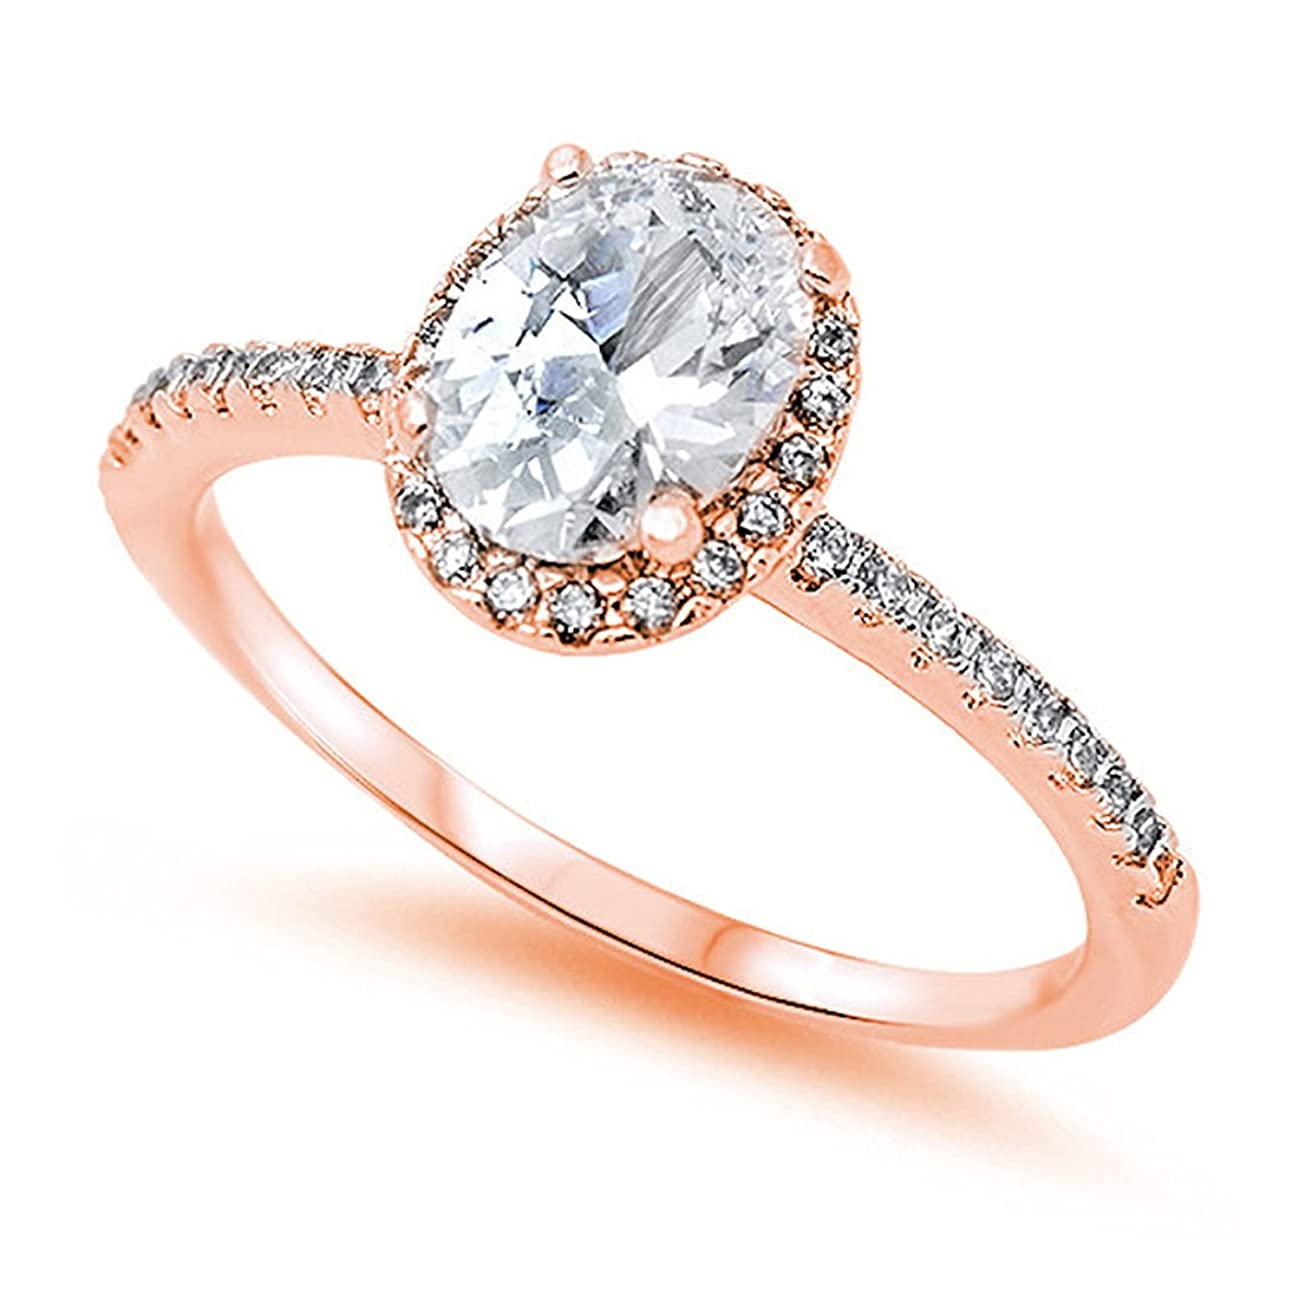 Blue Apple Co. Accent Halo Wedding Promise Ring Oval Cut Cubic Zirconia Round CZ Rose Tone Plated 925 Sterling Silver